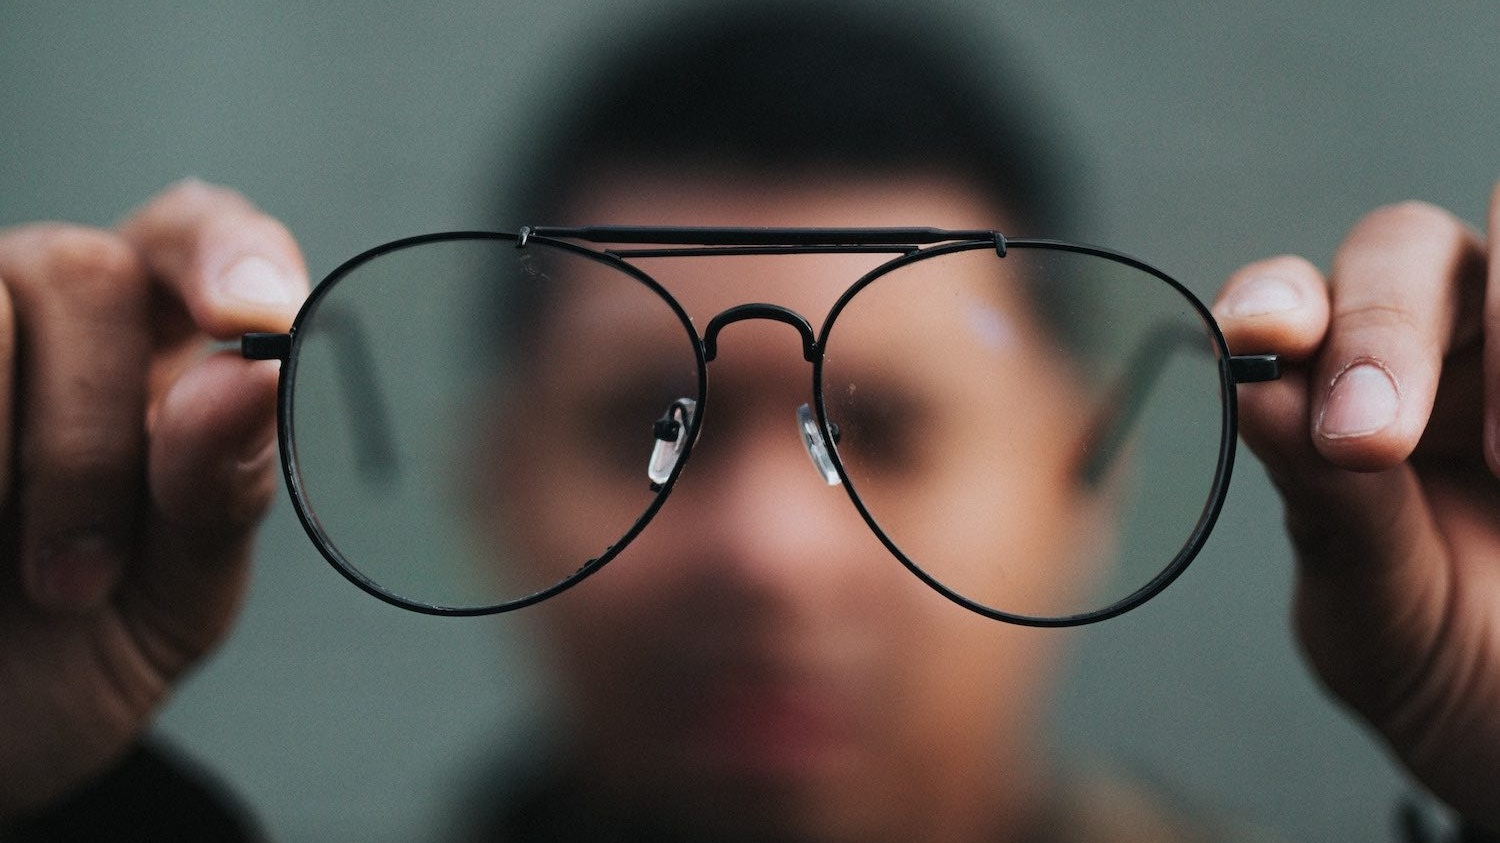 A person holding glasses, with a blurry background